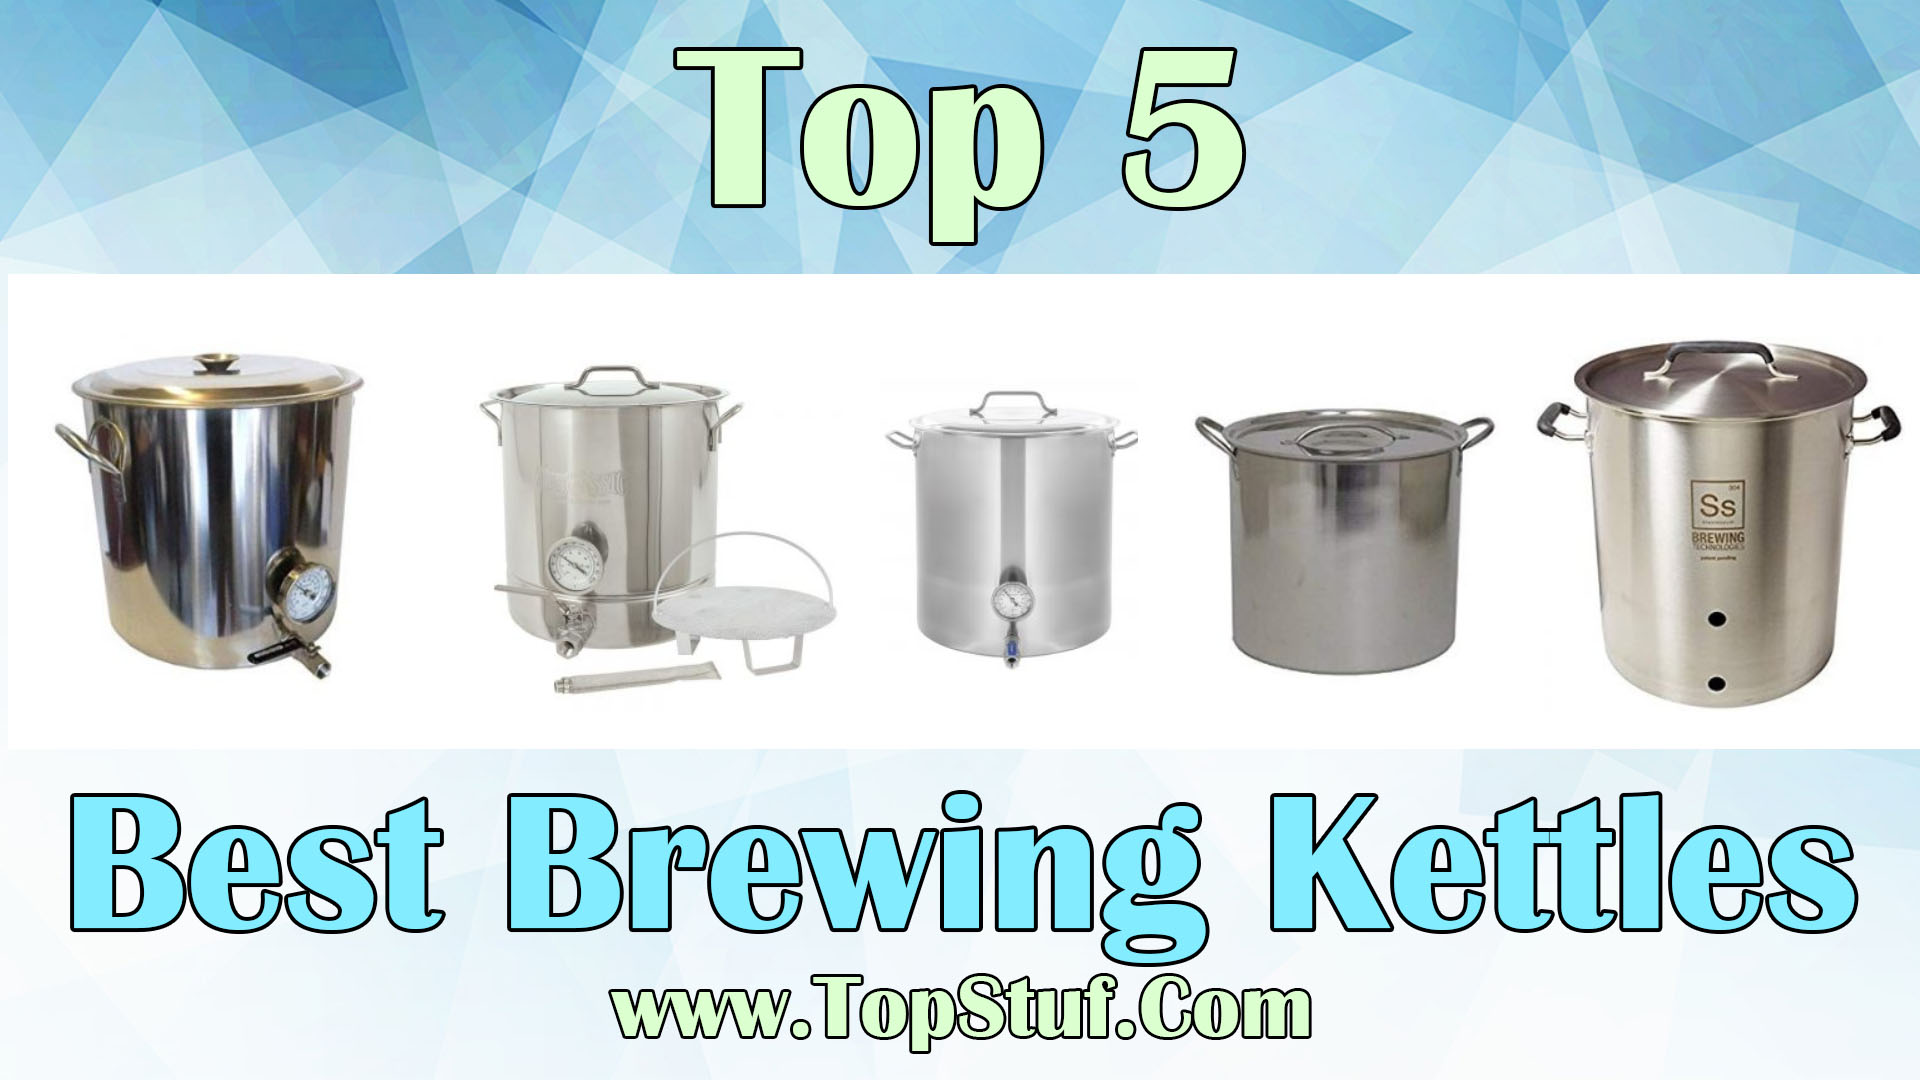 Best Brewing Kettles